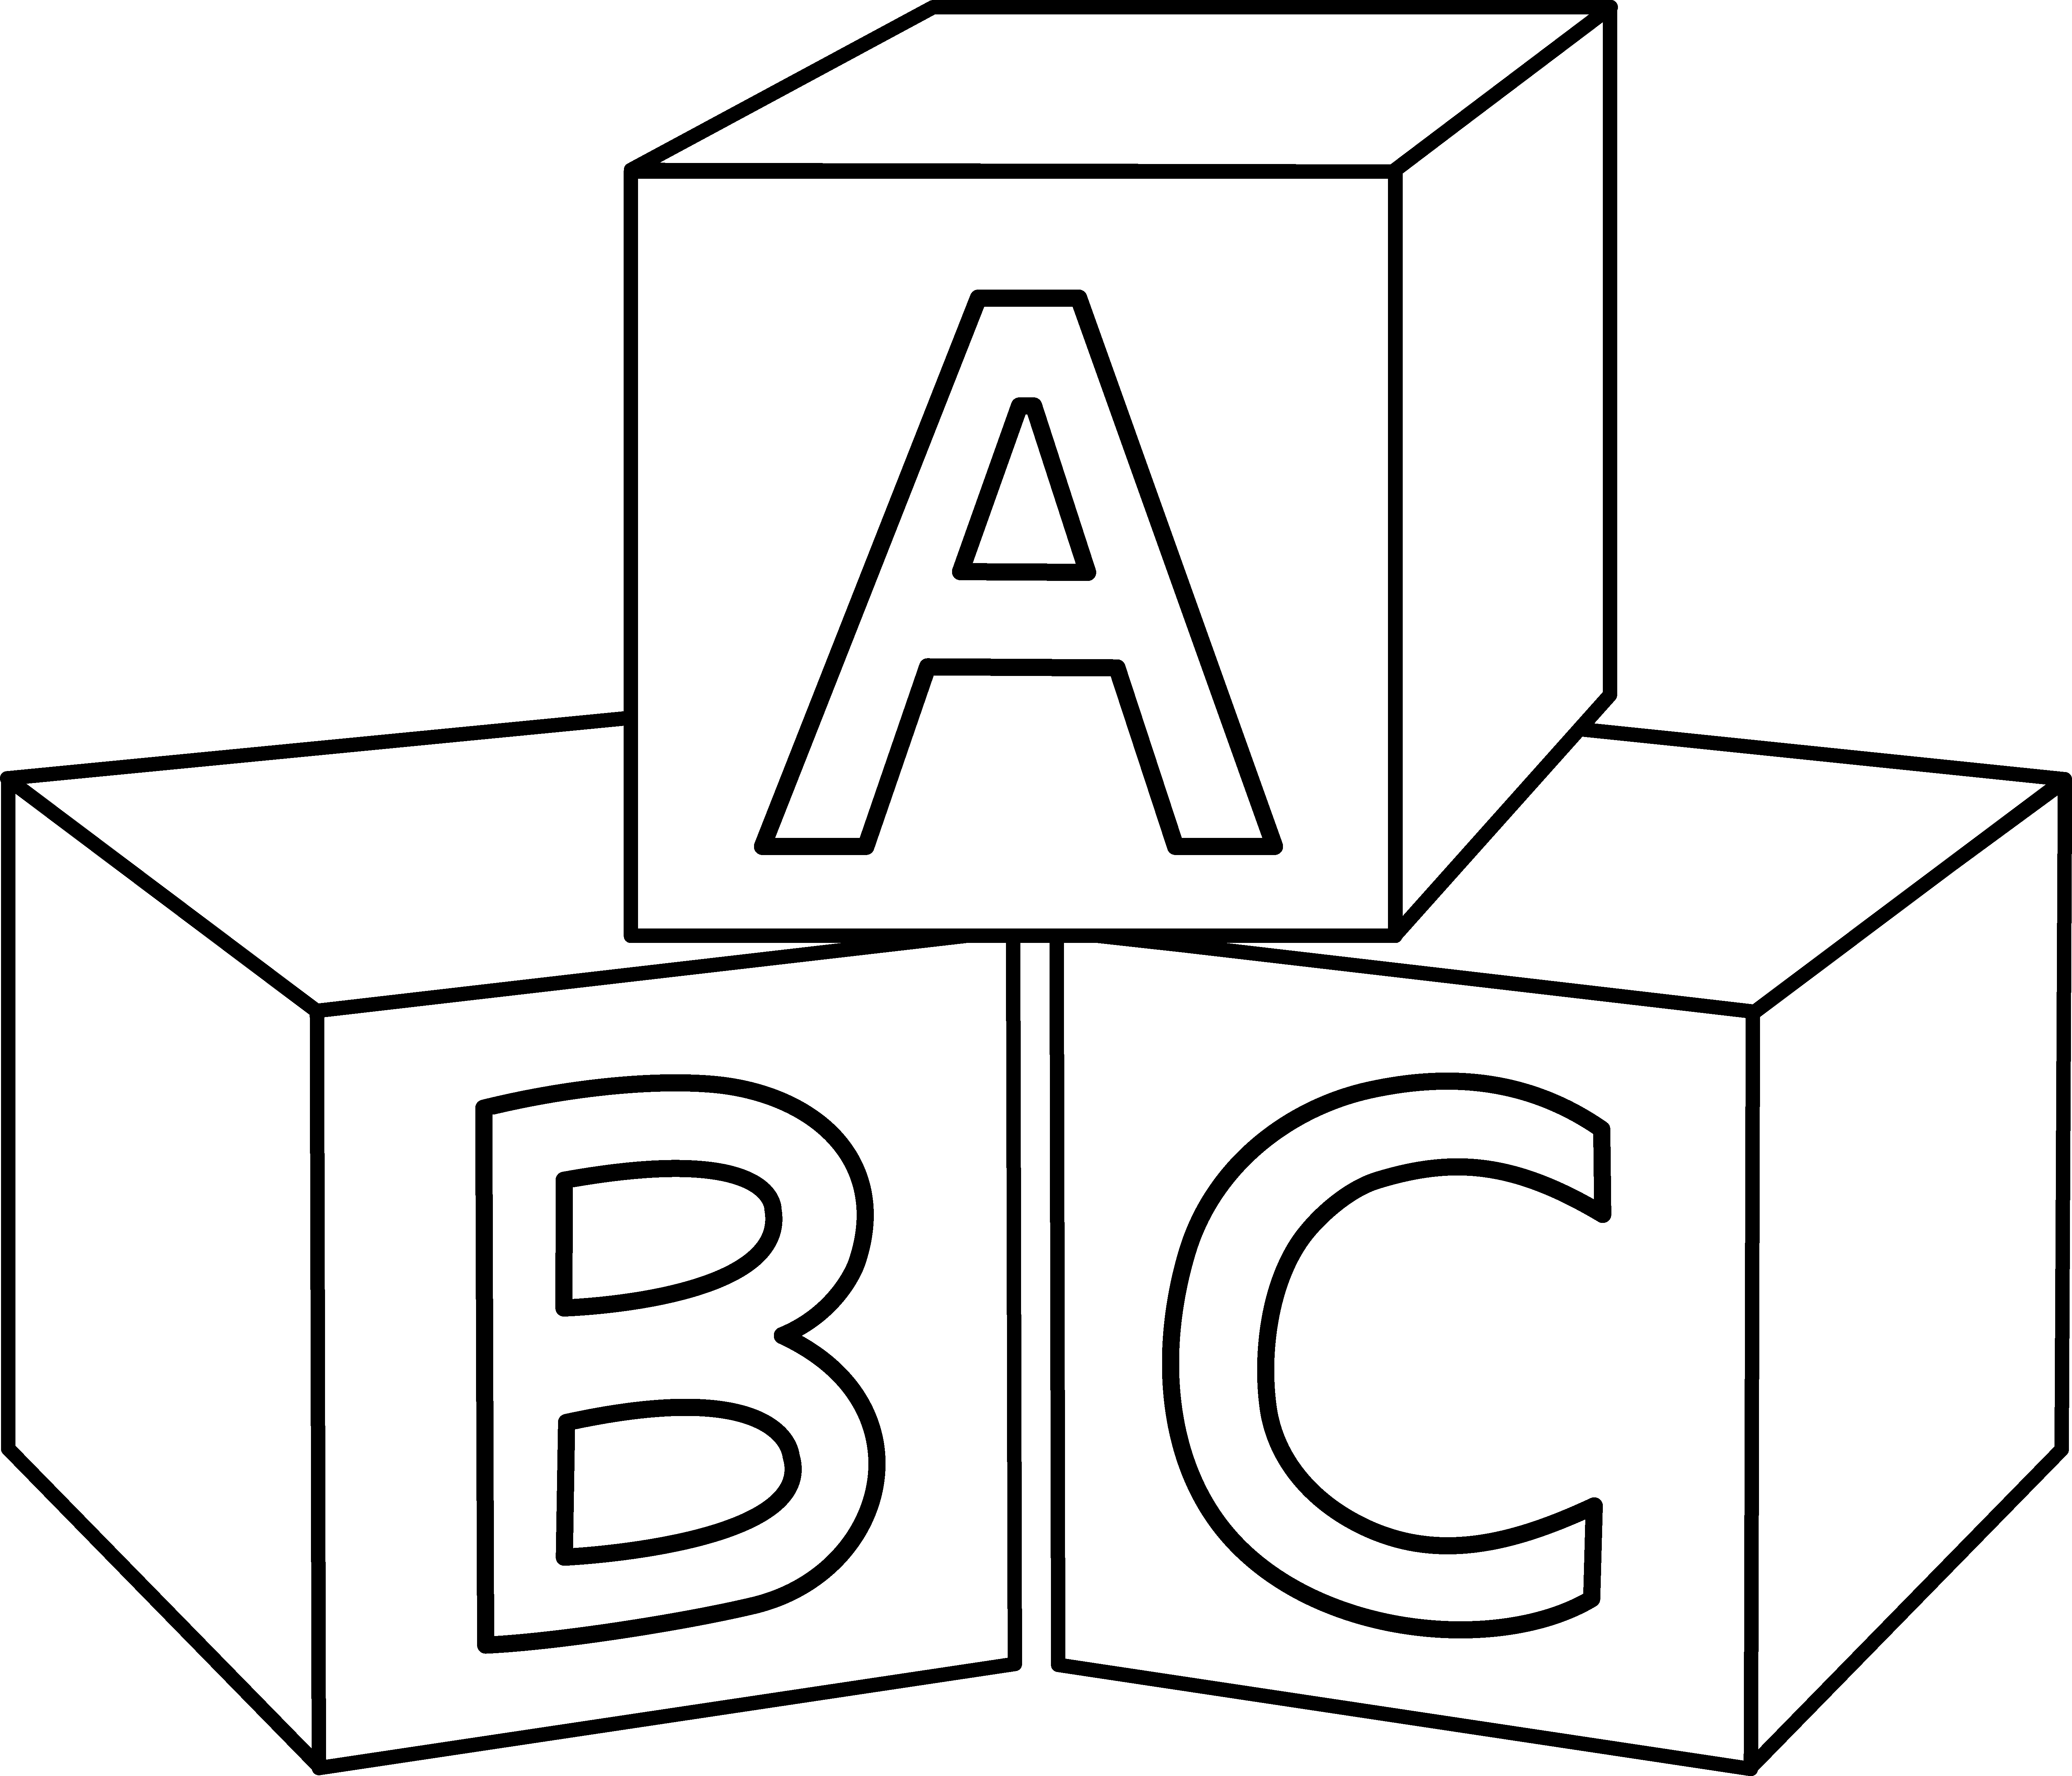 Abc Blocks Design Coloring Pages For Kids Abc Coloring Pages Coloring Pages